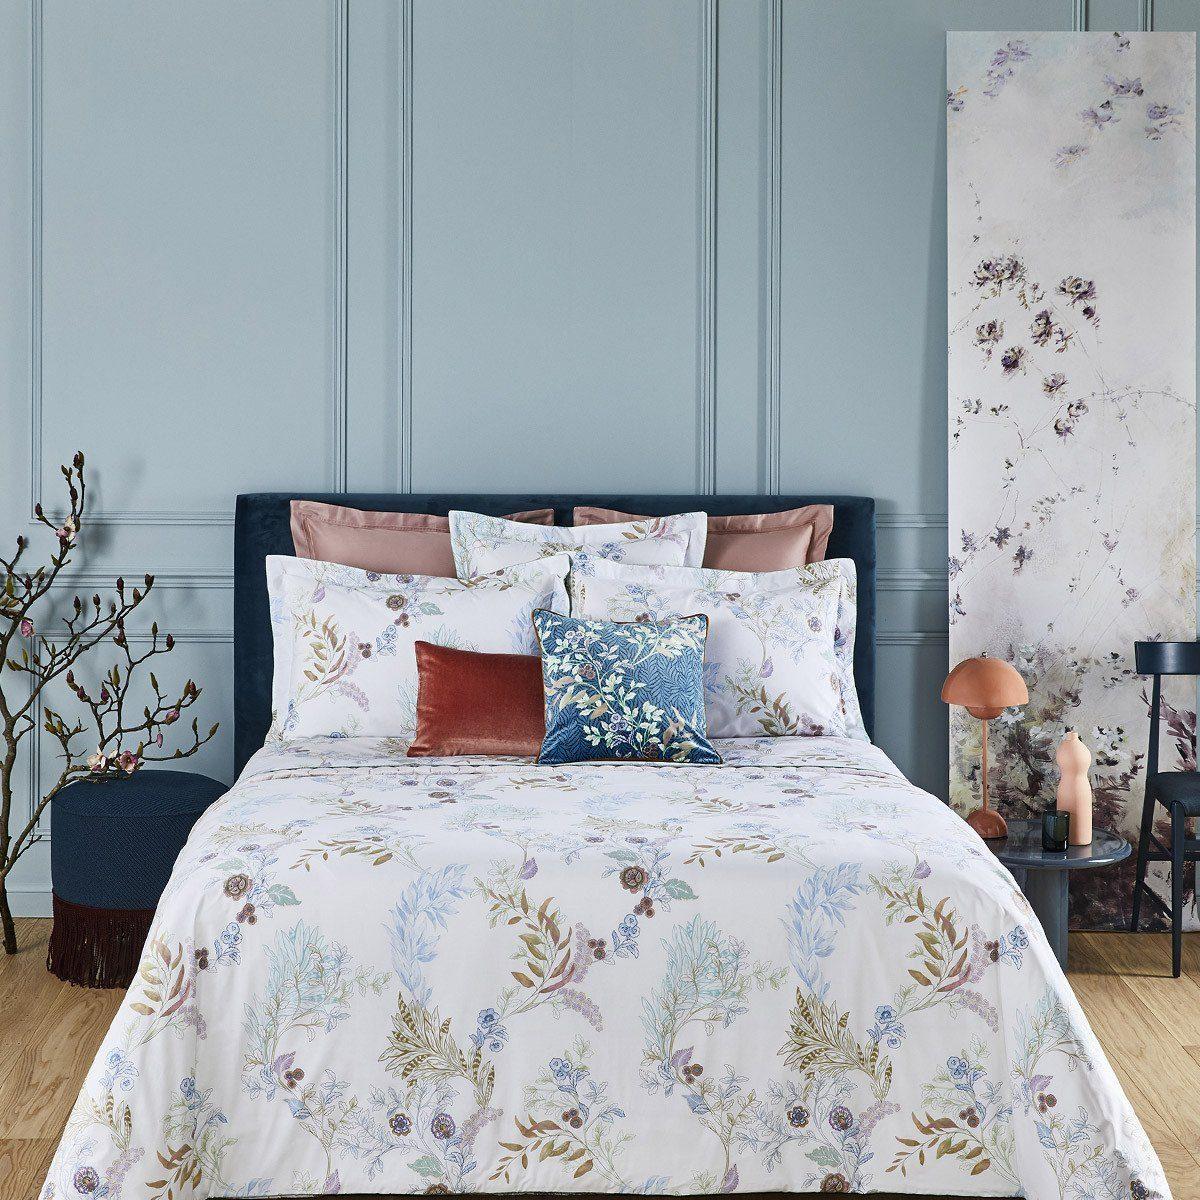 Fig Linens - Yves Delorme Caliopee Bedding and Pillow